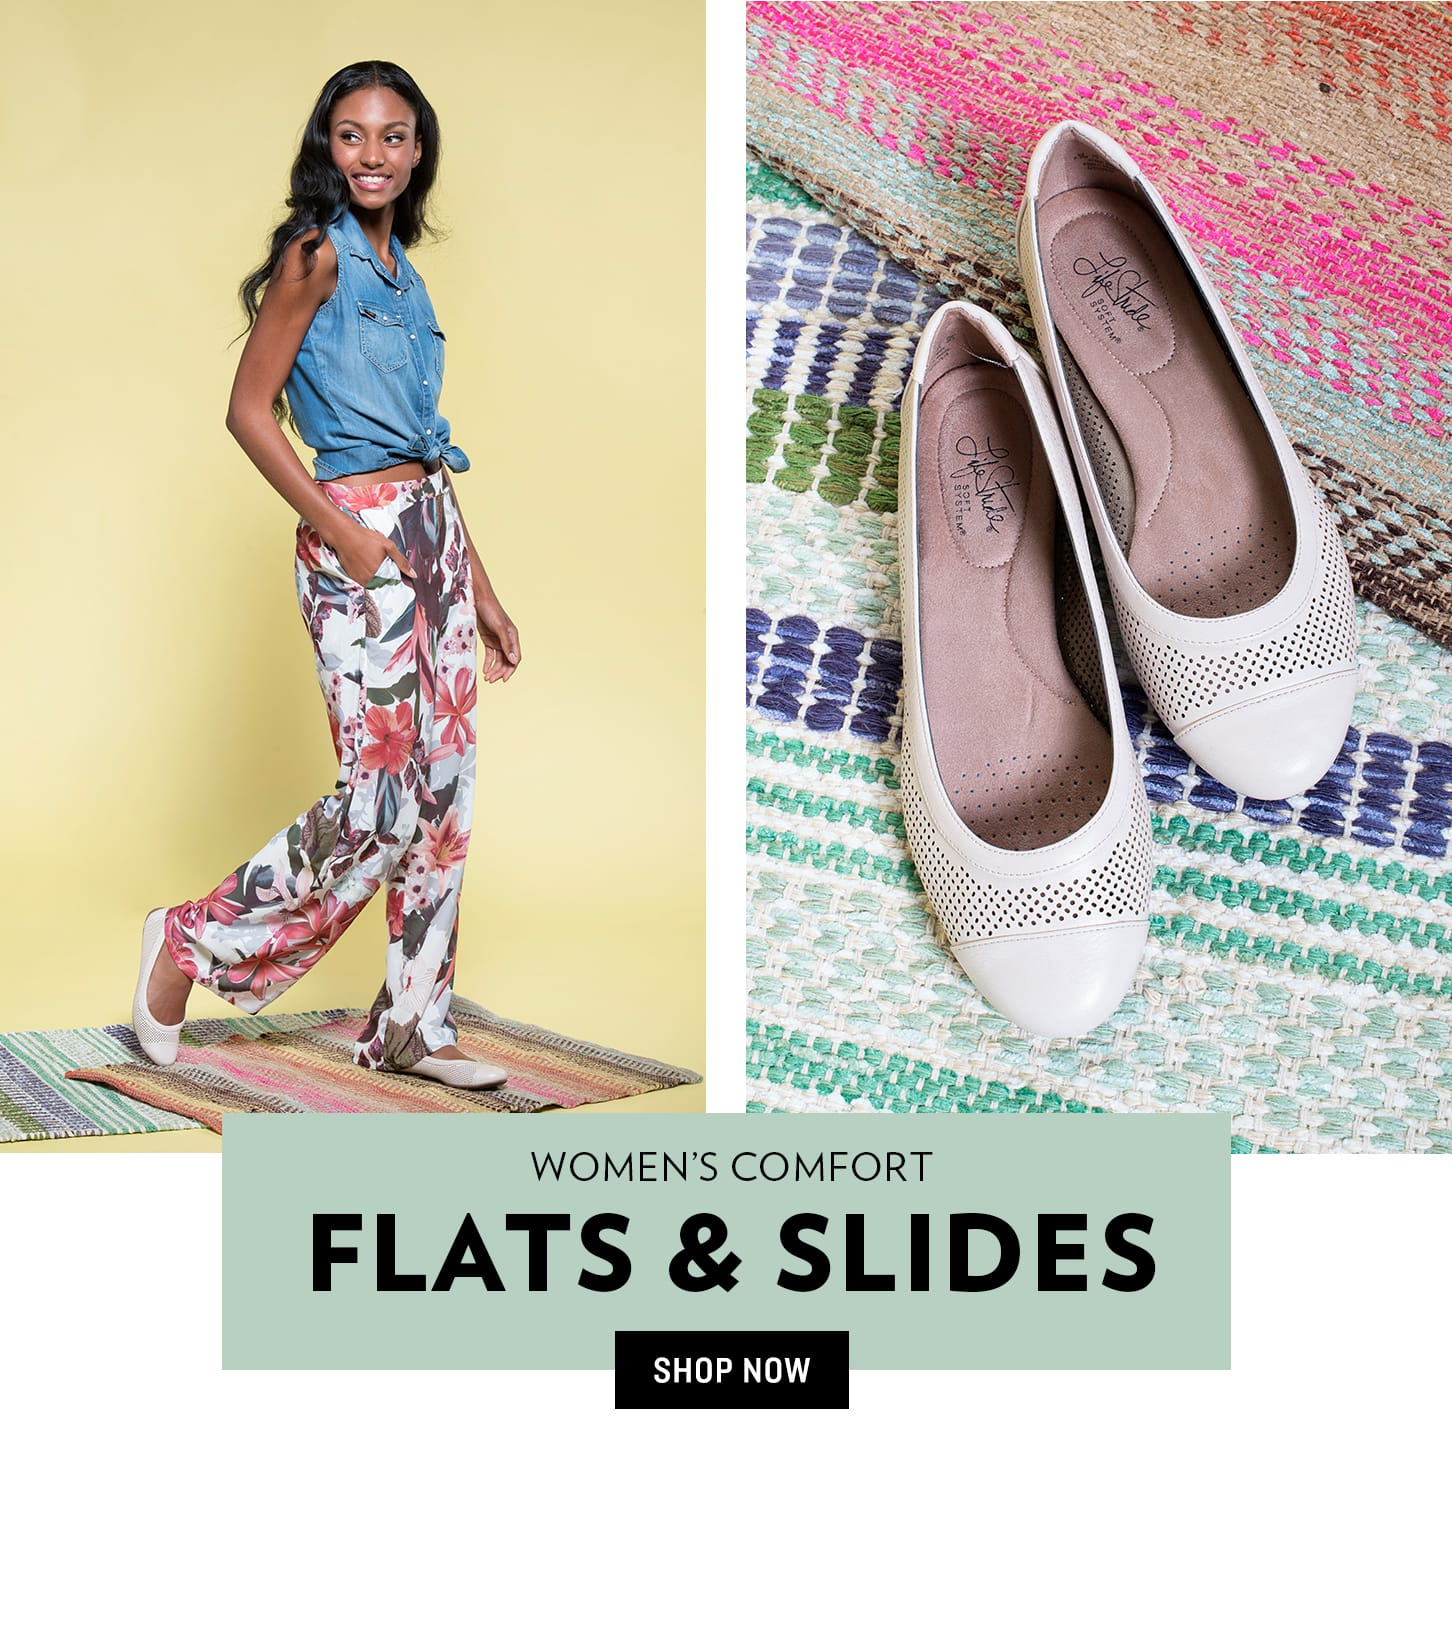 Shop Women's Comfort Flats & Slides